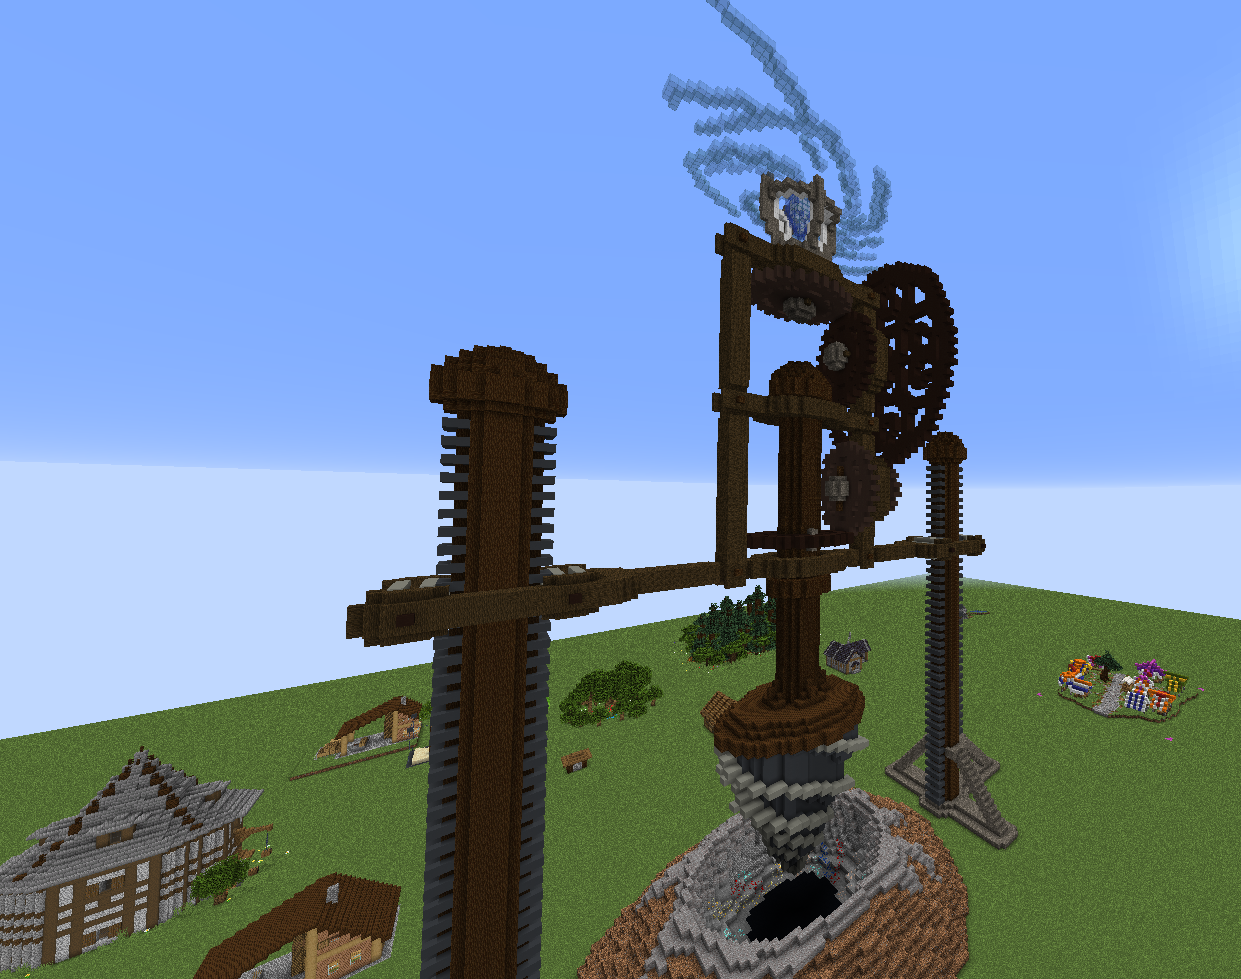 All models build in Minecraft